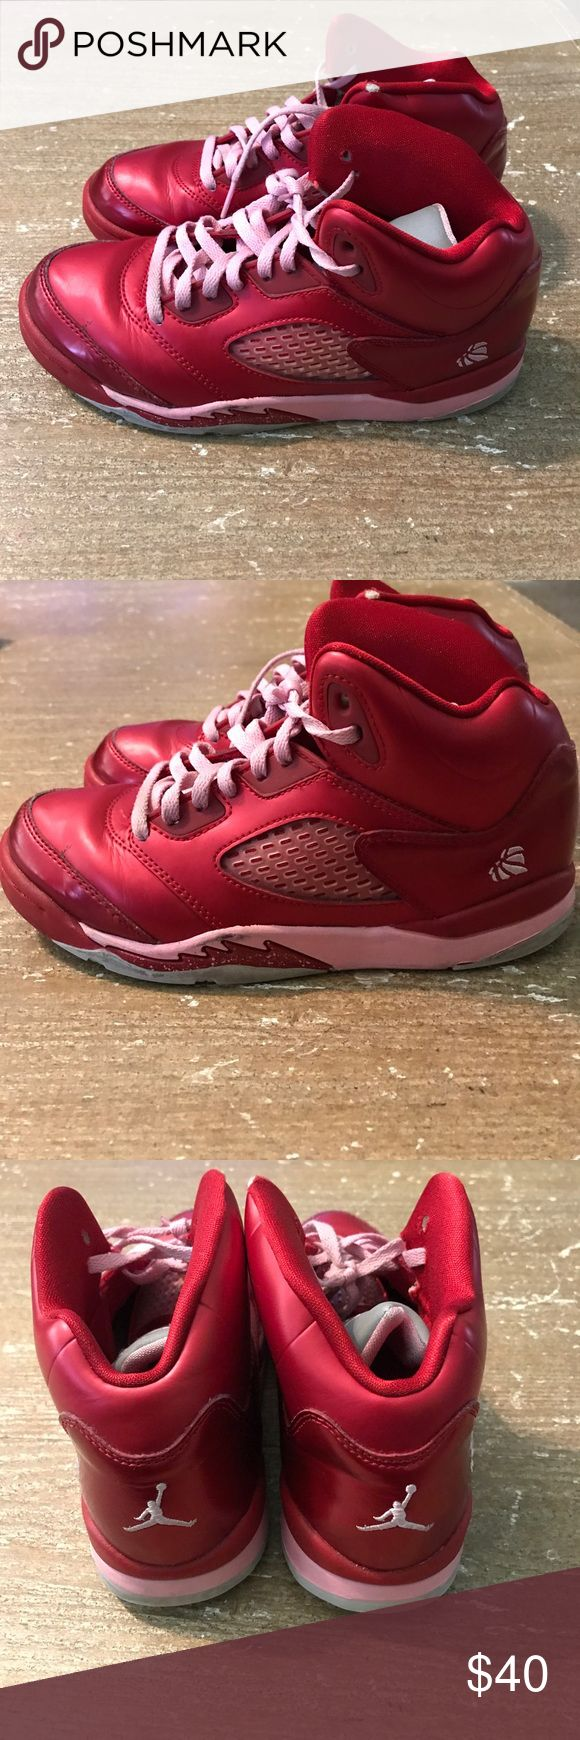 """Air Jordan V Retro GS """" Valentine's Air Jordan V Retro GS """" Valentine's size 3Y, normal wear please look at the pictures. Thanks for stopping by. Air Jordan Shoes Sneakers"""